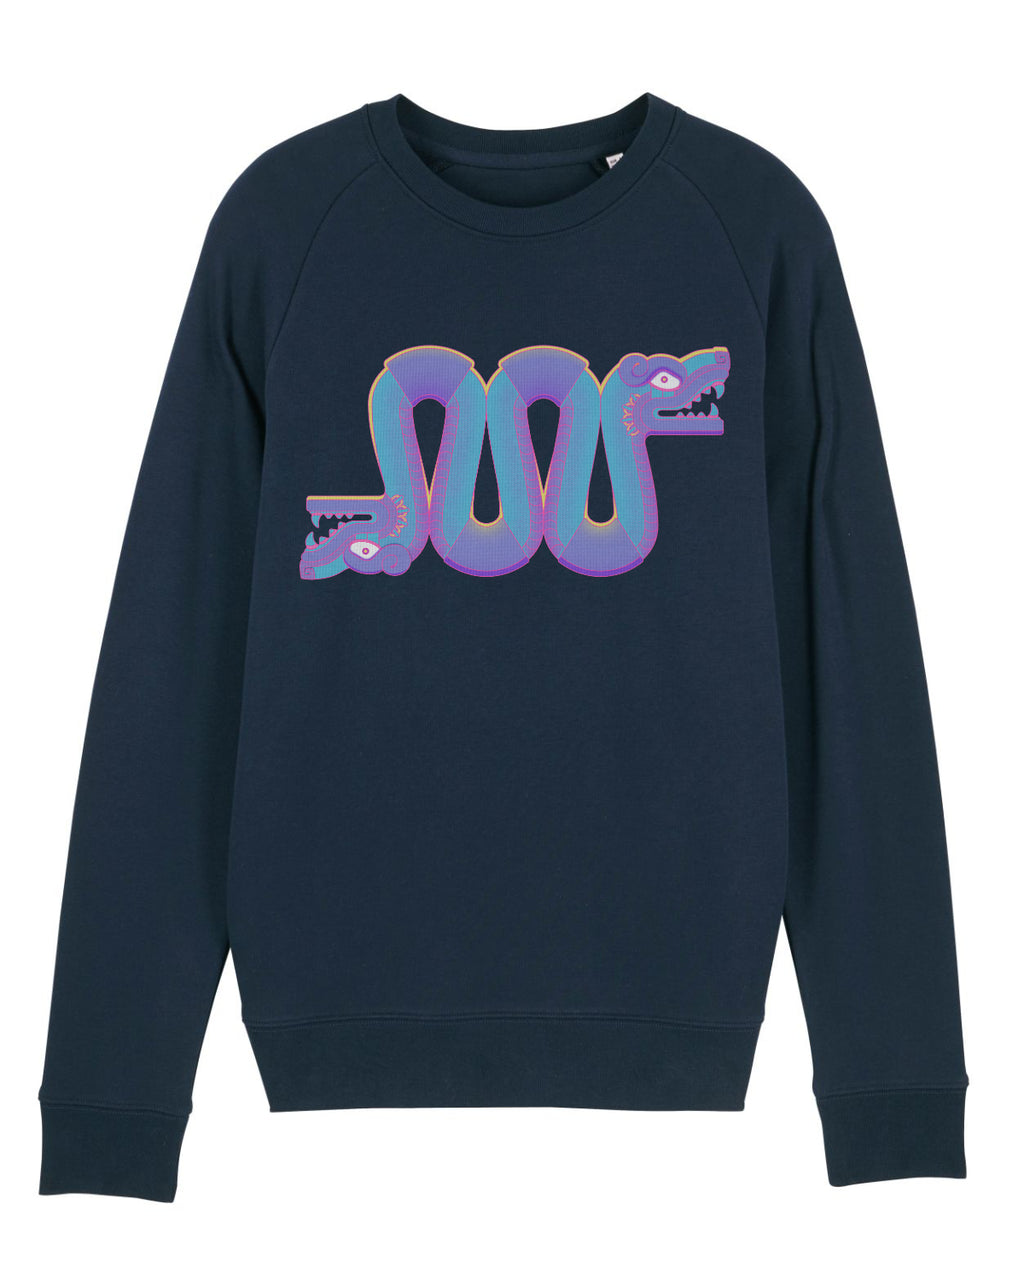 mens midweight sweatshirt with large blue and purple snake print